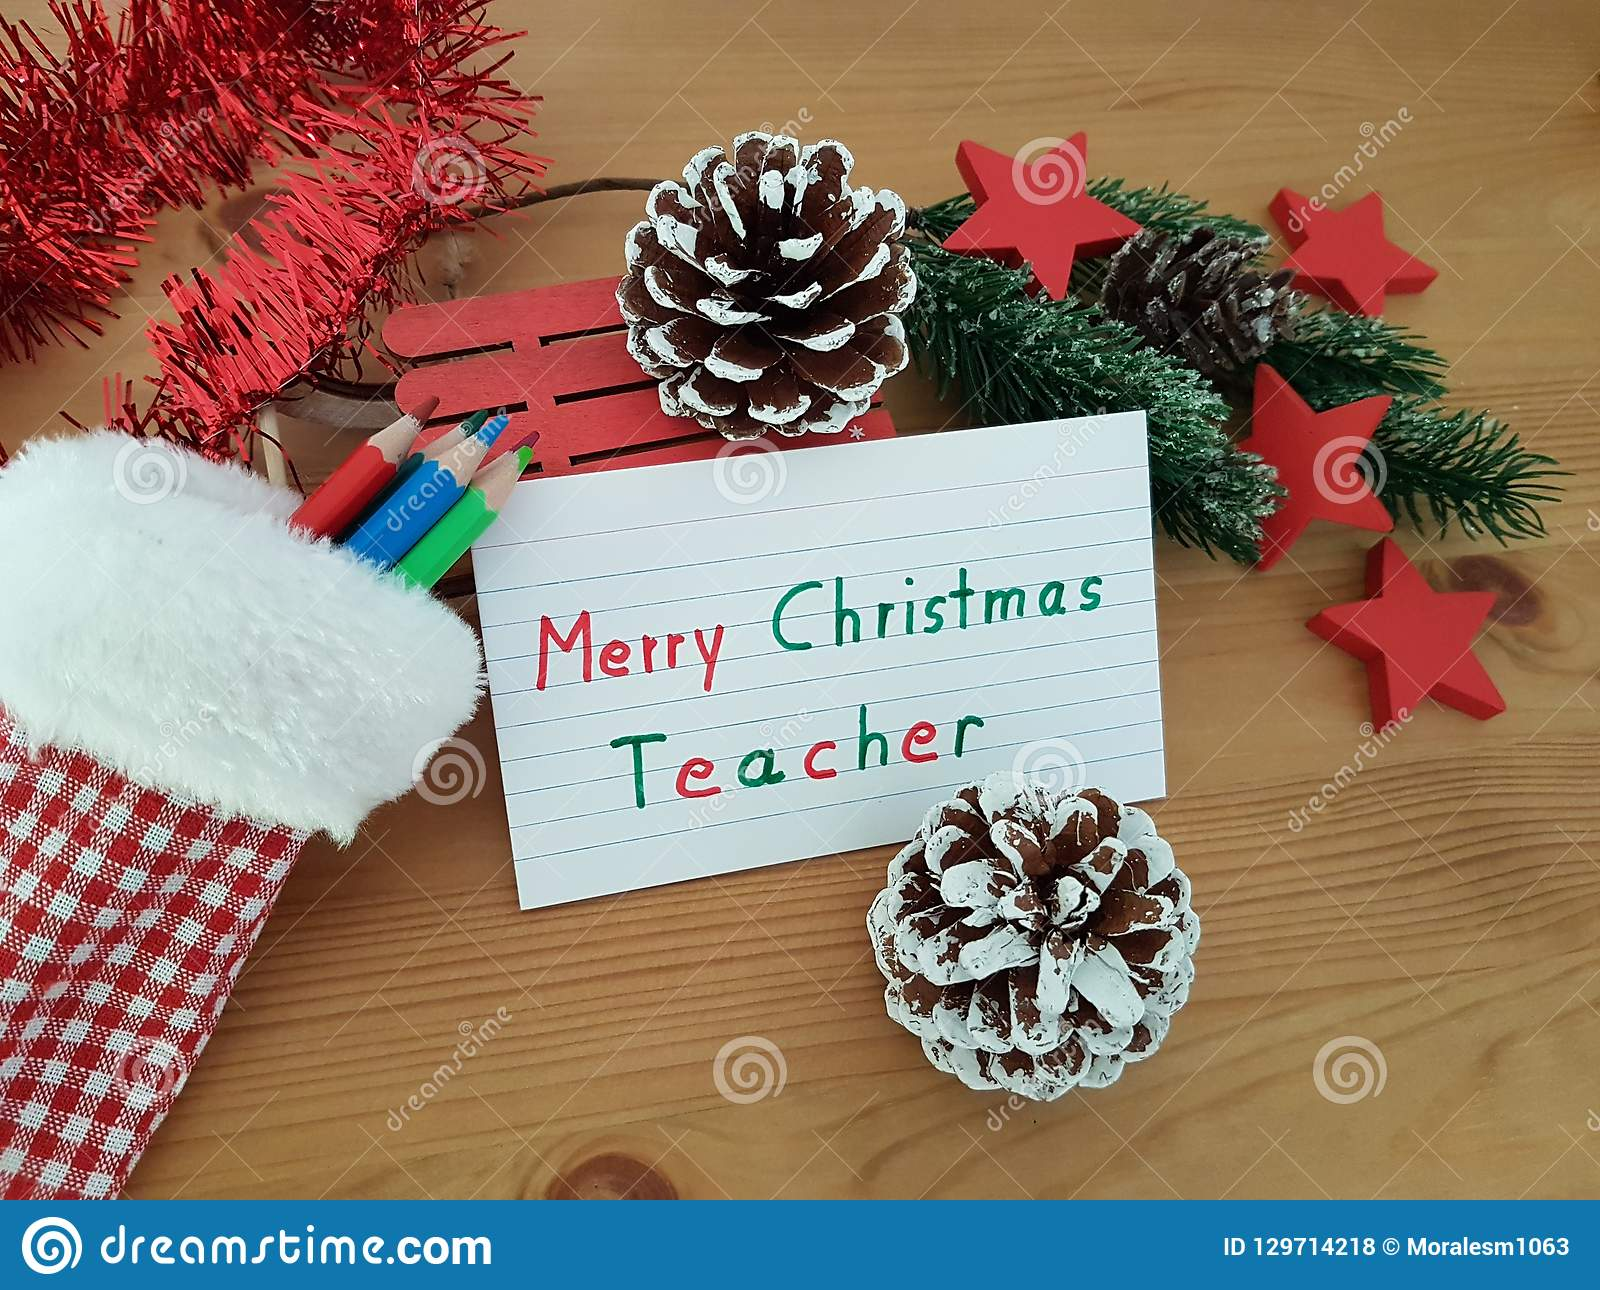 Merry Christmas Teacher, Stocking With Colored Pencils, Pine Cone And Sled